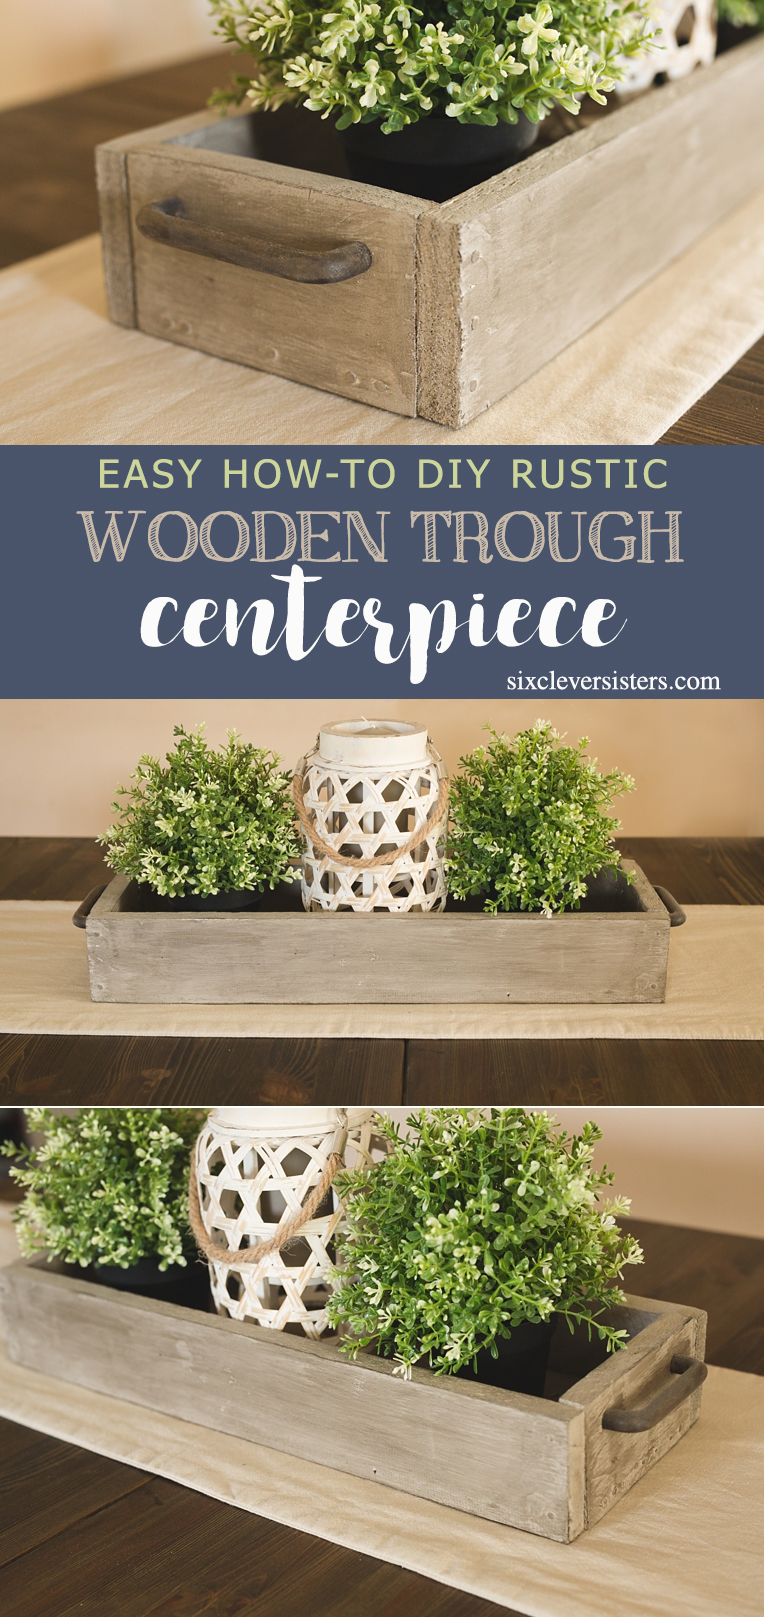 Diy rustic wooden trough centerpiece six clever sisters